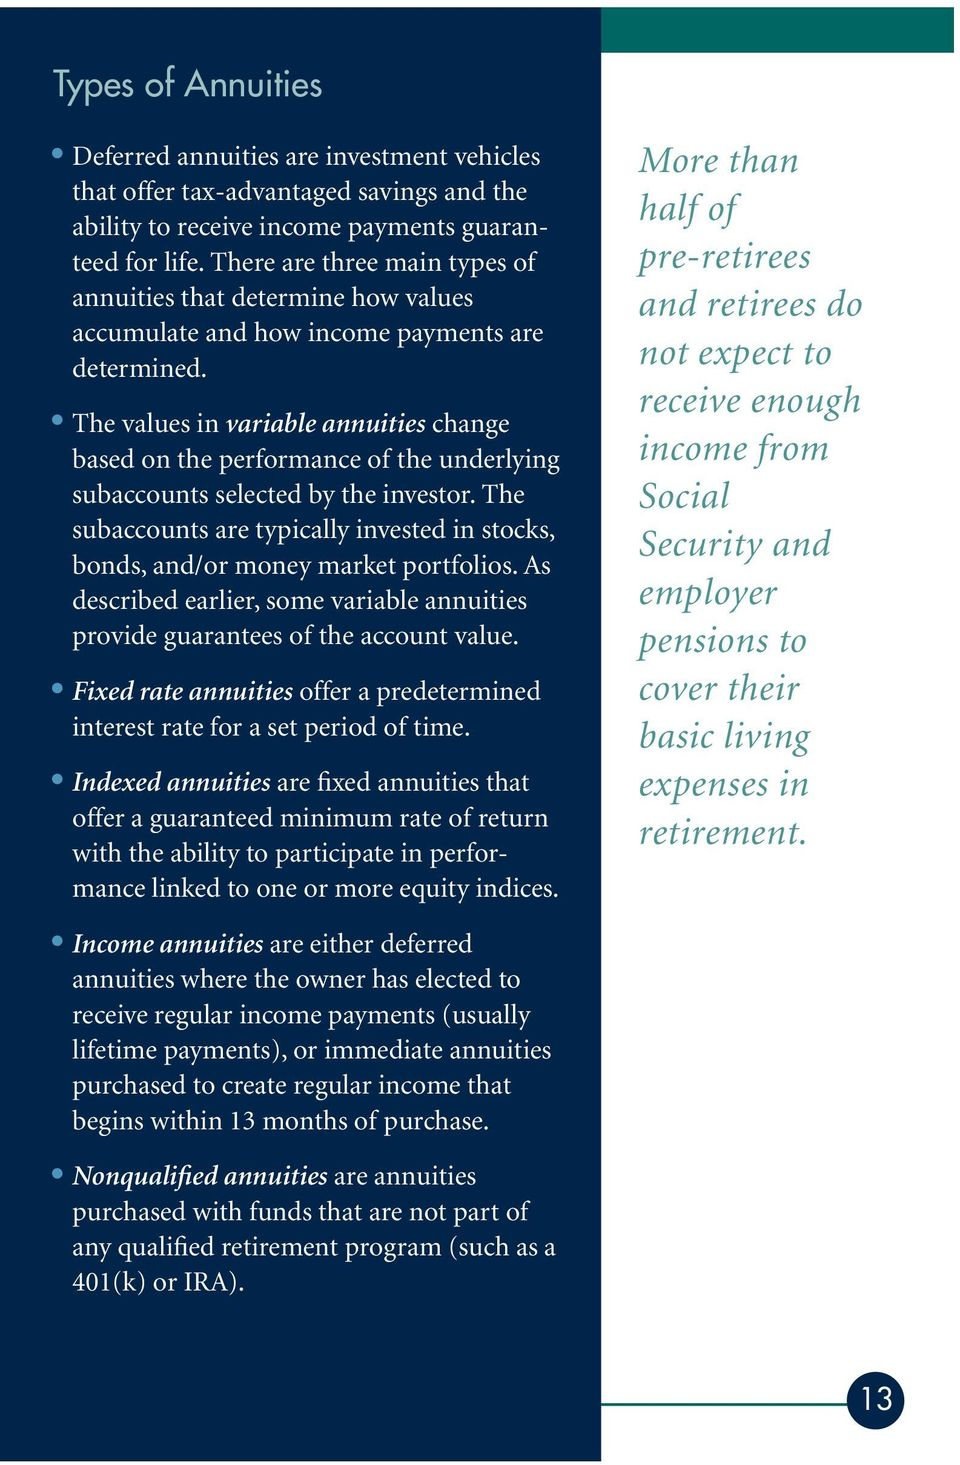 The values in variable annuities change based on the performance of the underlying subaccounts selected by the investor.